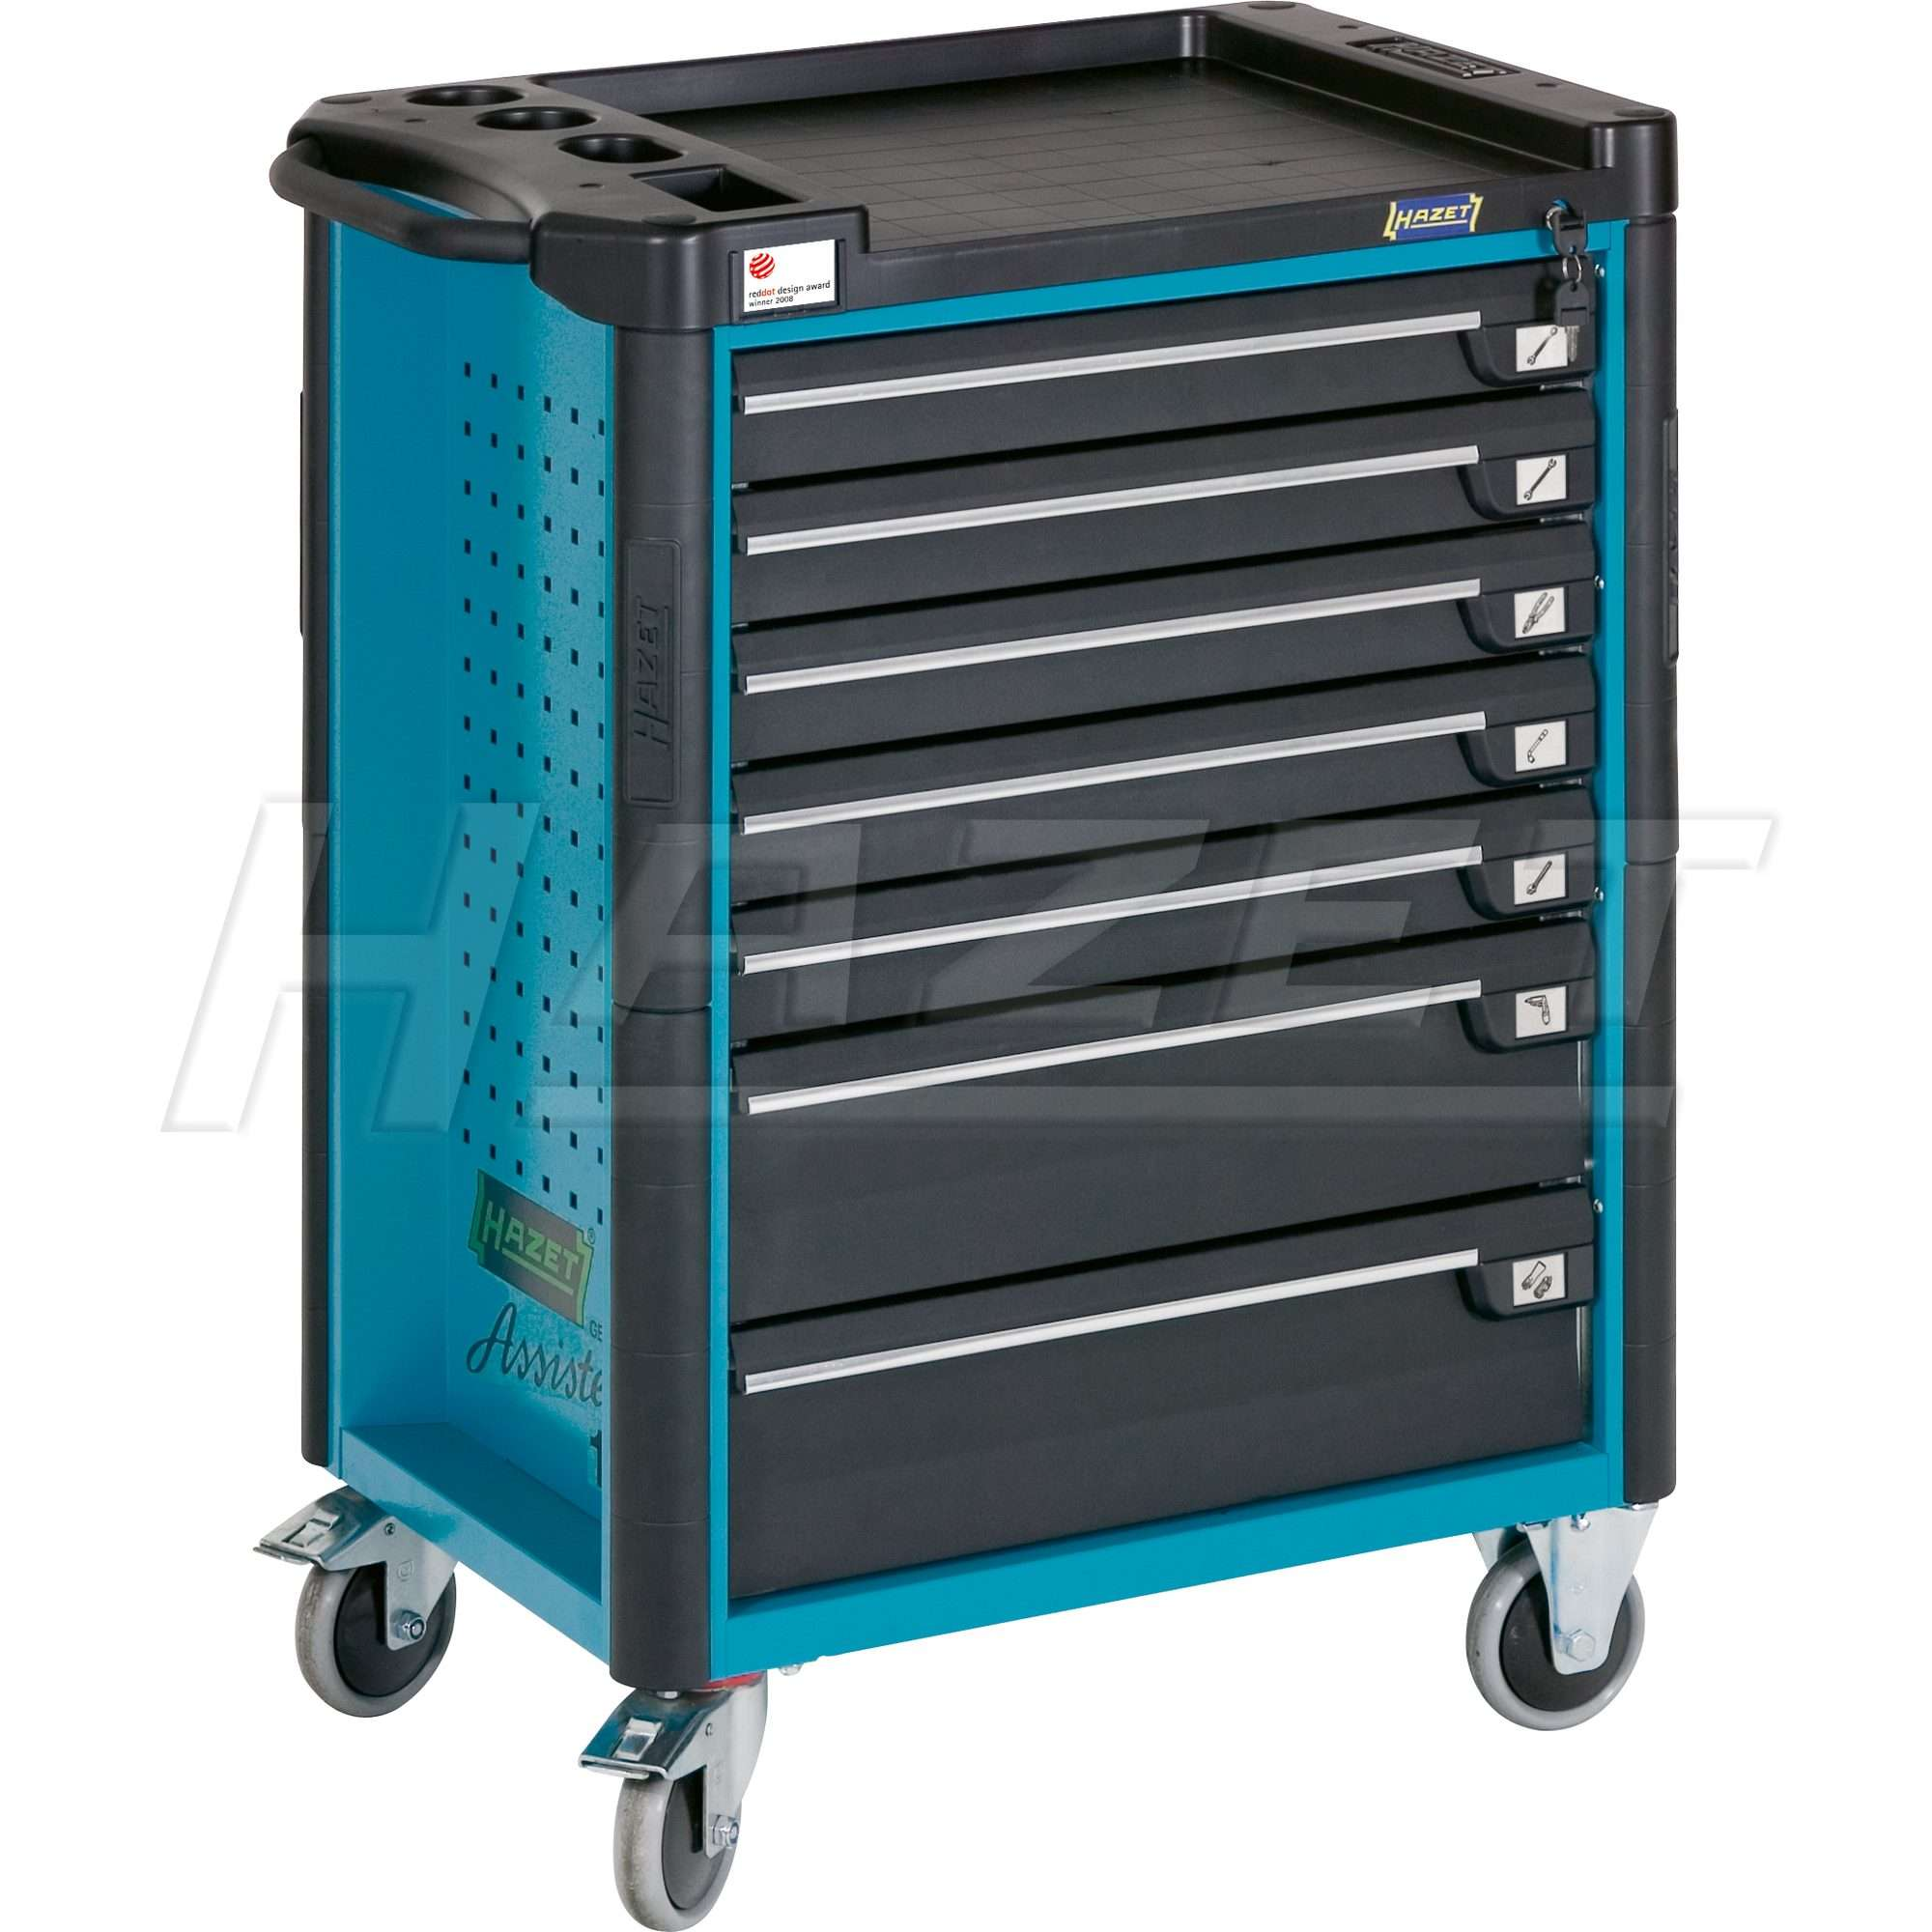 Tool trolley General Workshop Equipment Products